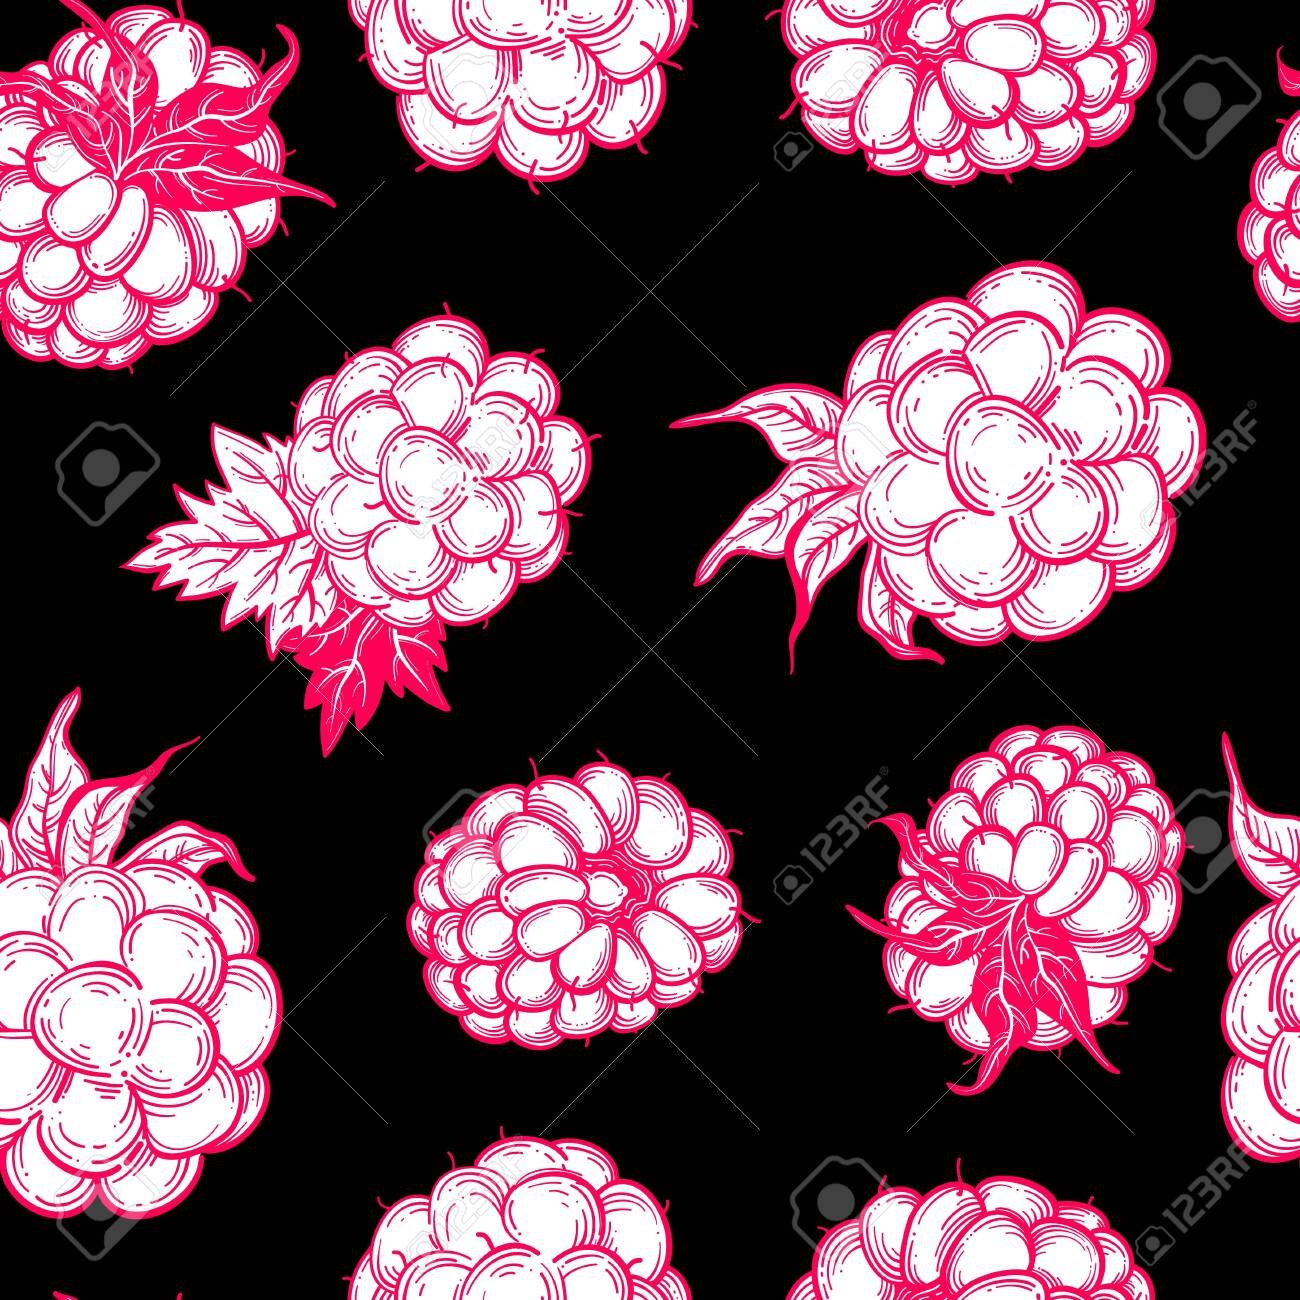 Sketch style vector eco food illustration. Hand drawn raspberry and blackberry seamless pattern on white background. - 144916138